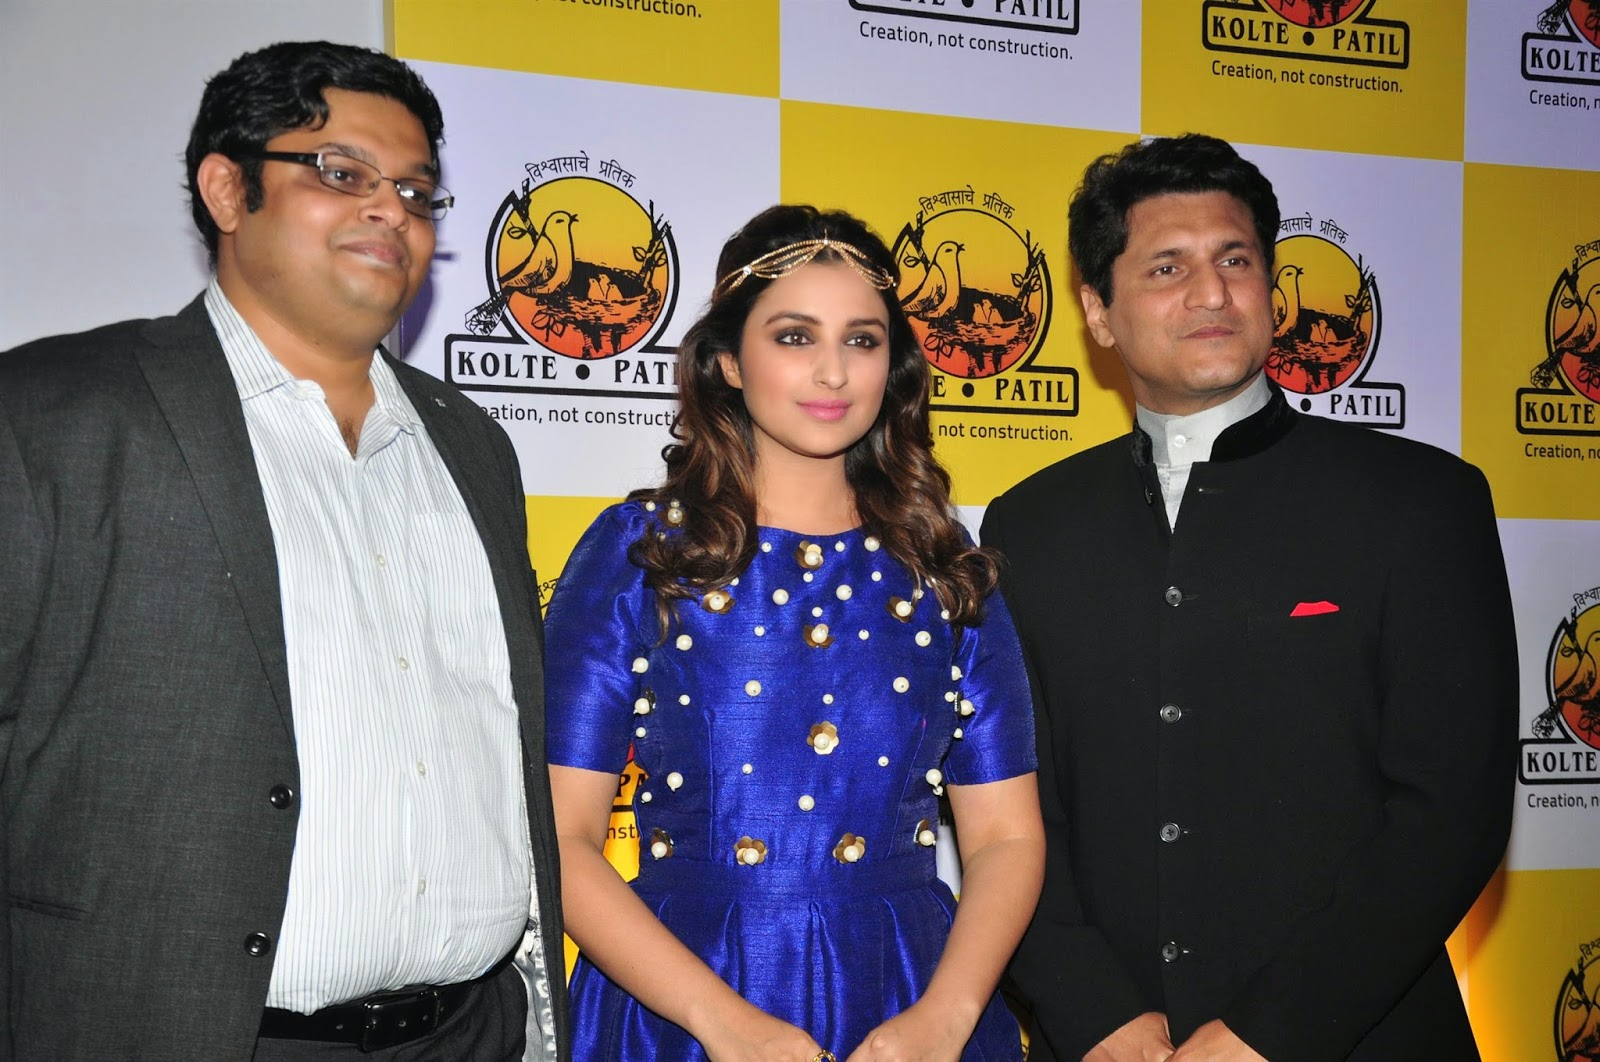 Gorgeous Parineeti Chopra at KPDL Mobile App launch event